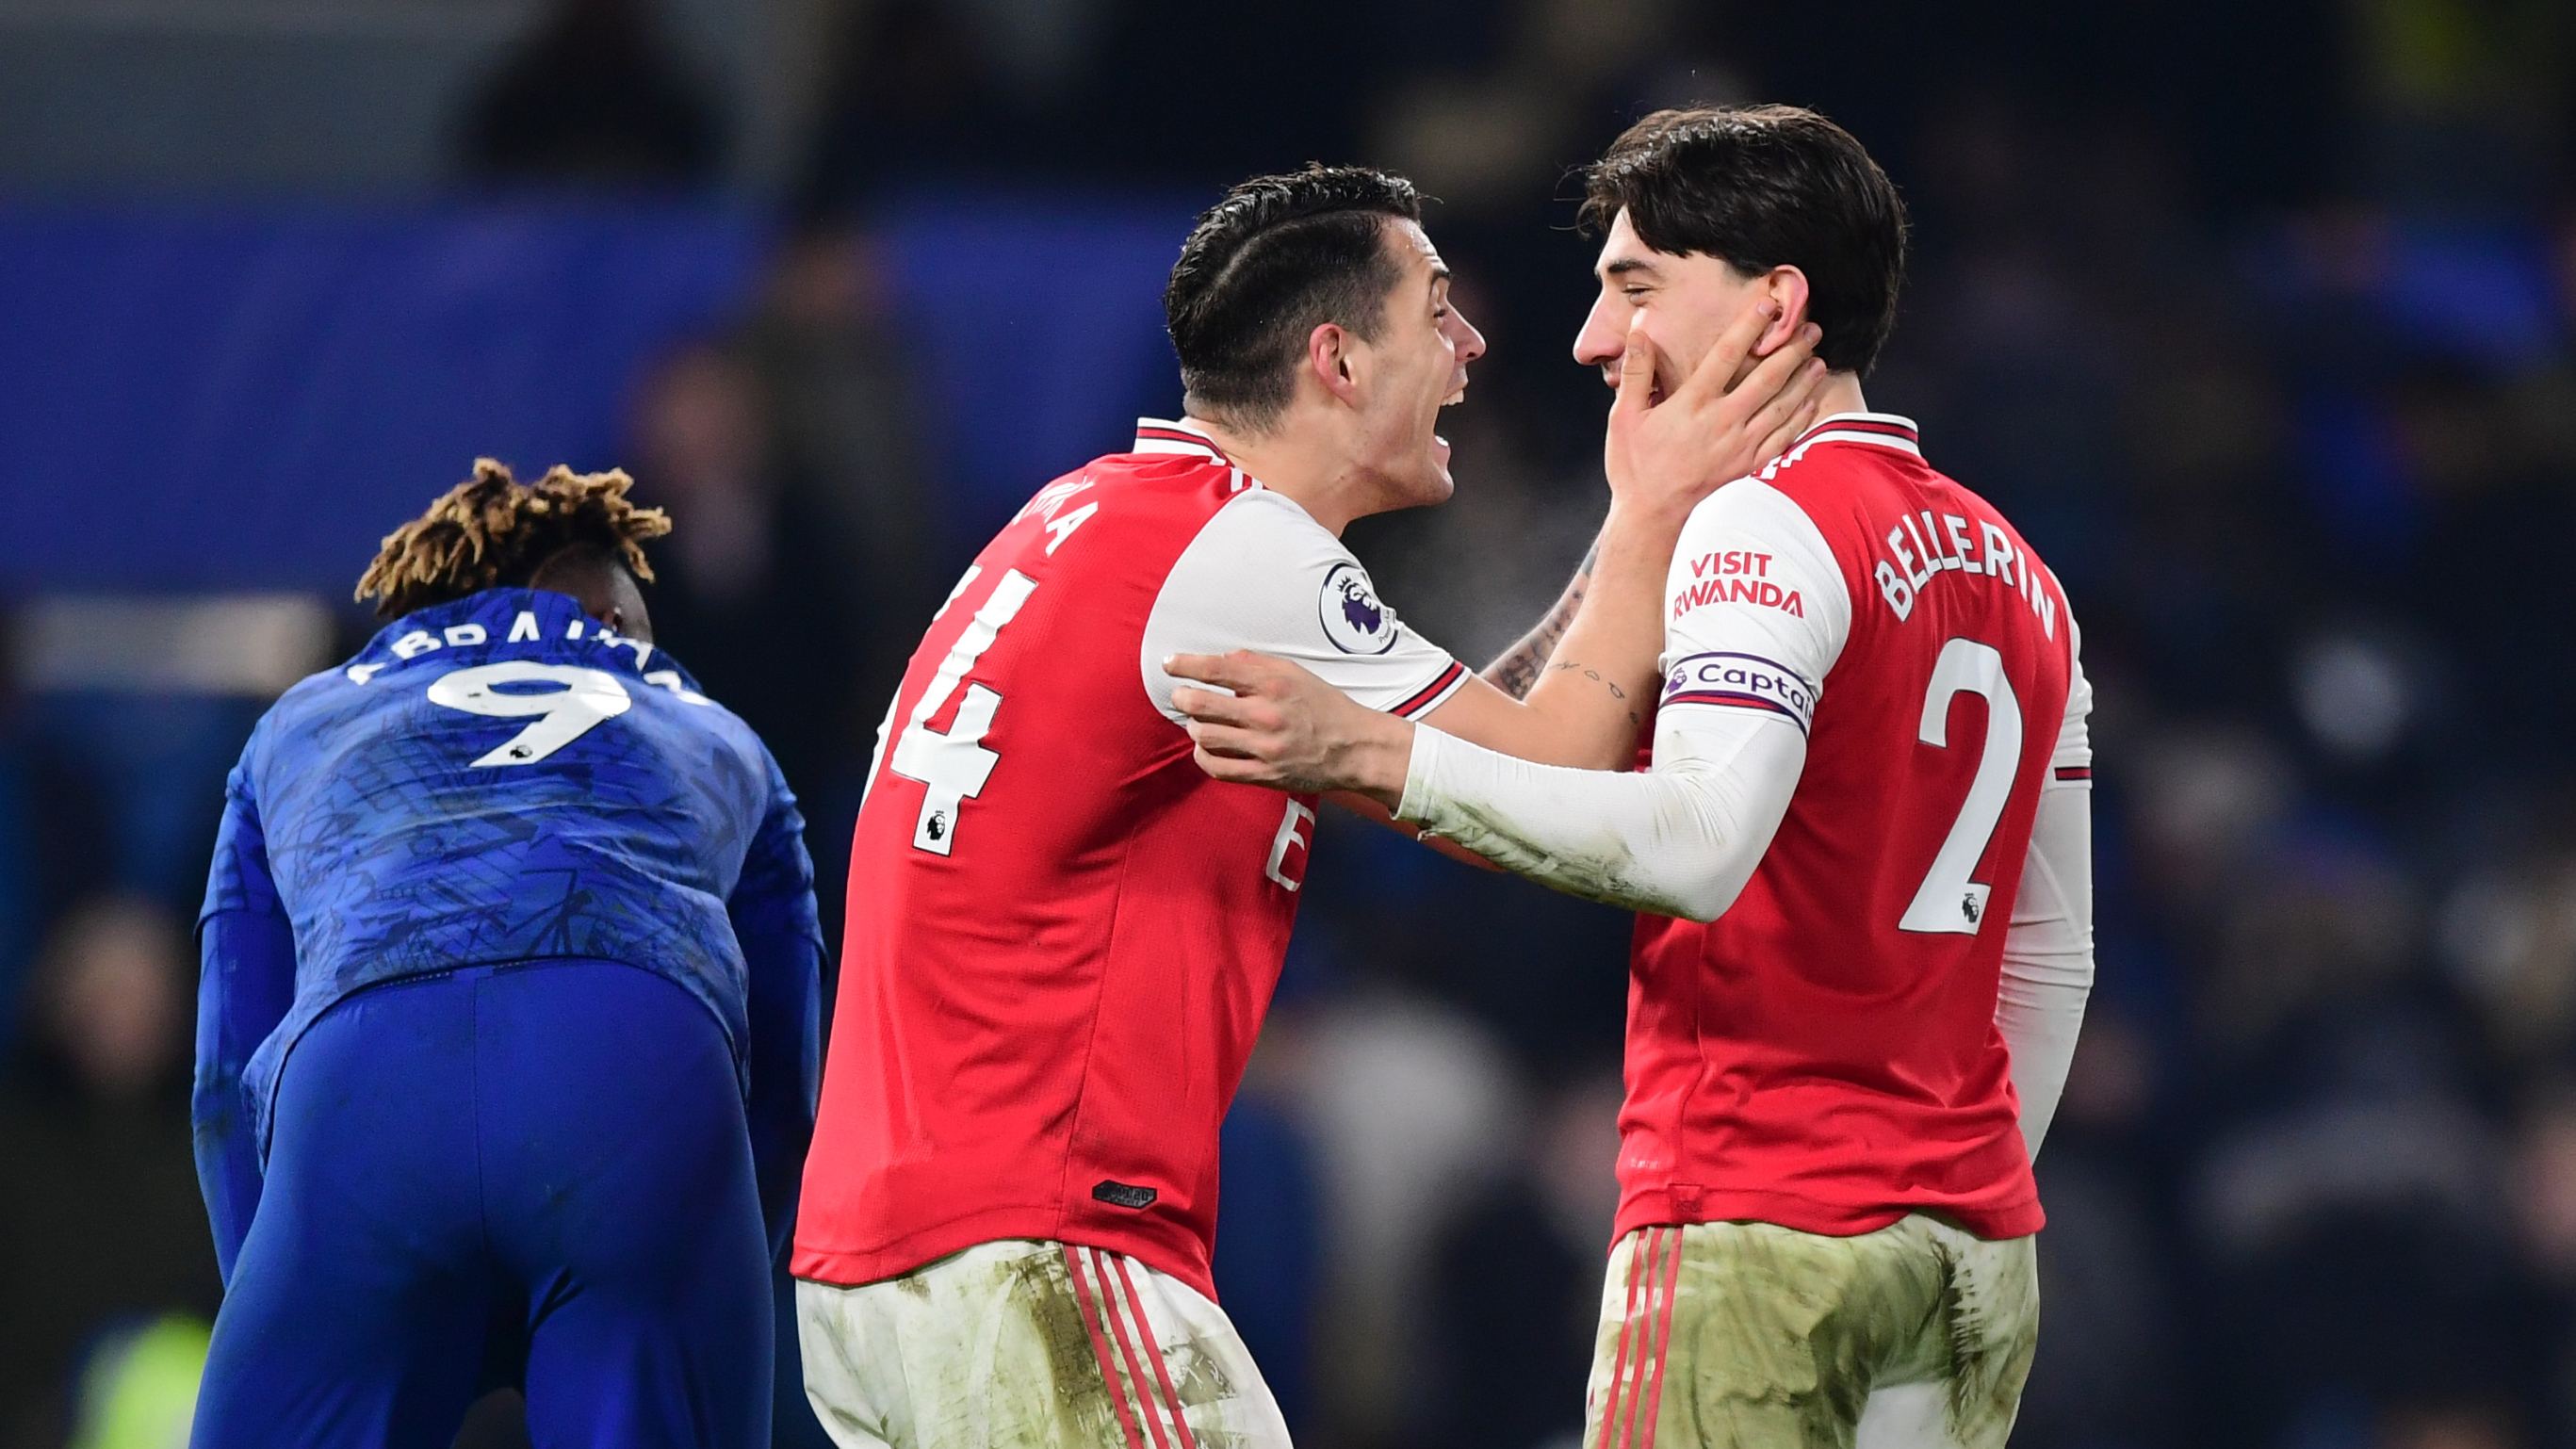 Arsenal showed we have character in Chelsea draw - Xhaka